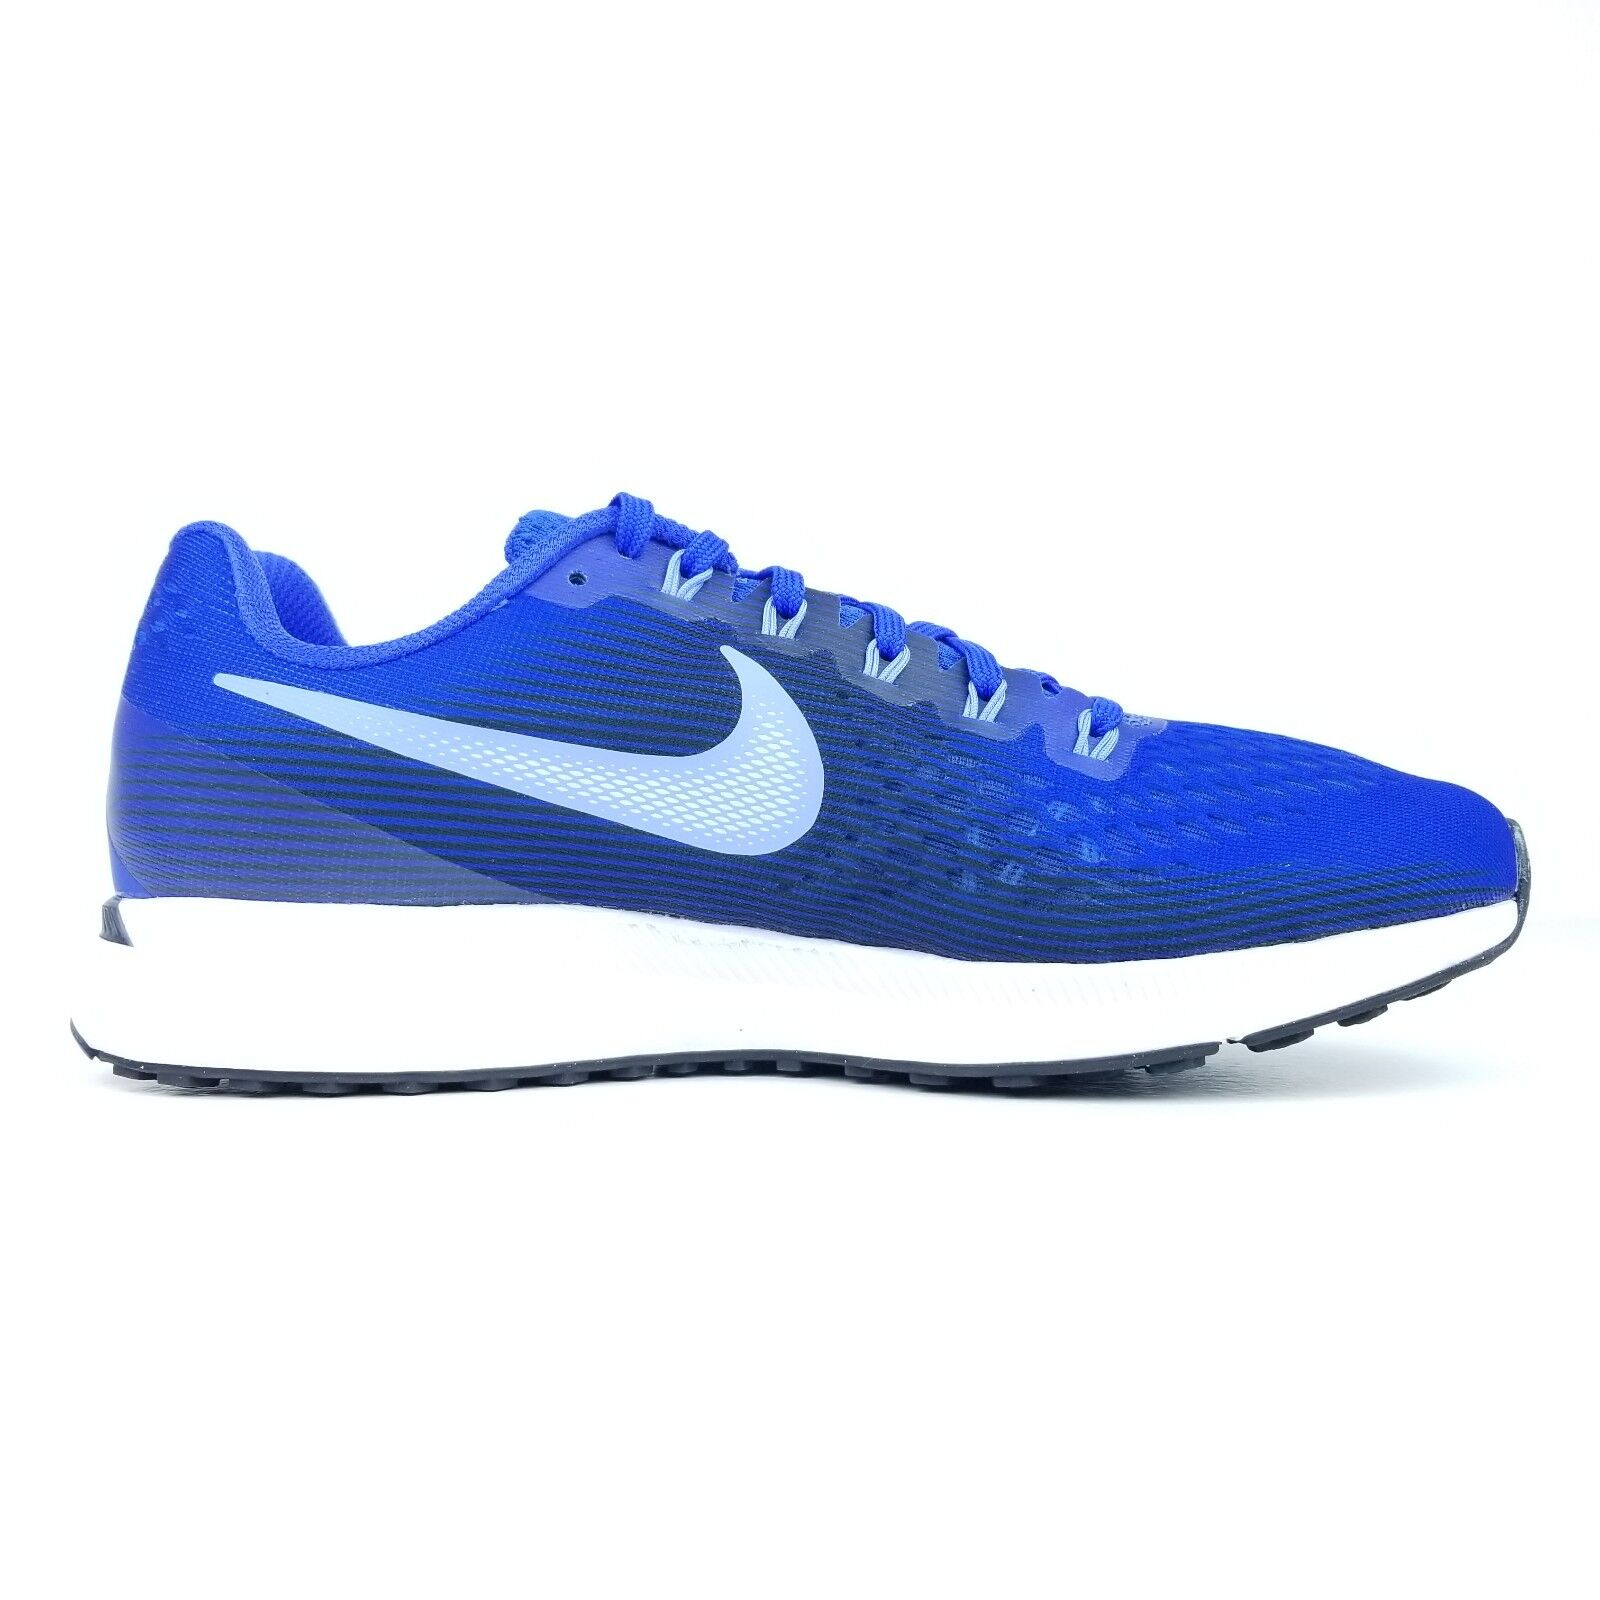 Nike Air Zoom Pegasus 34 Mens Running shoes 880555 409 Hyper Royal bluee Size